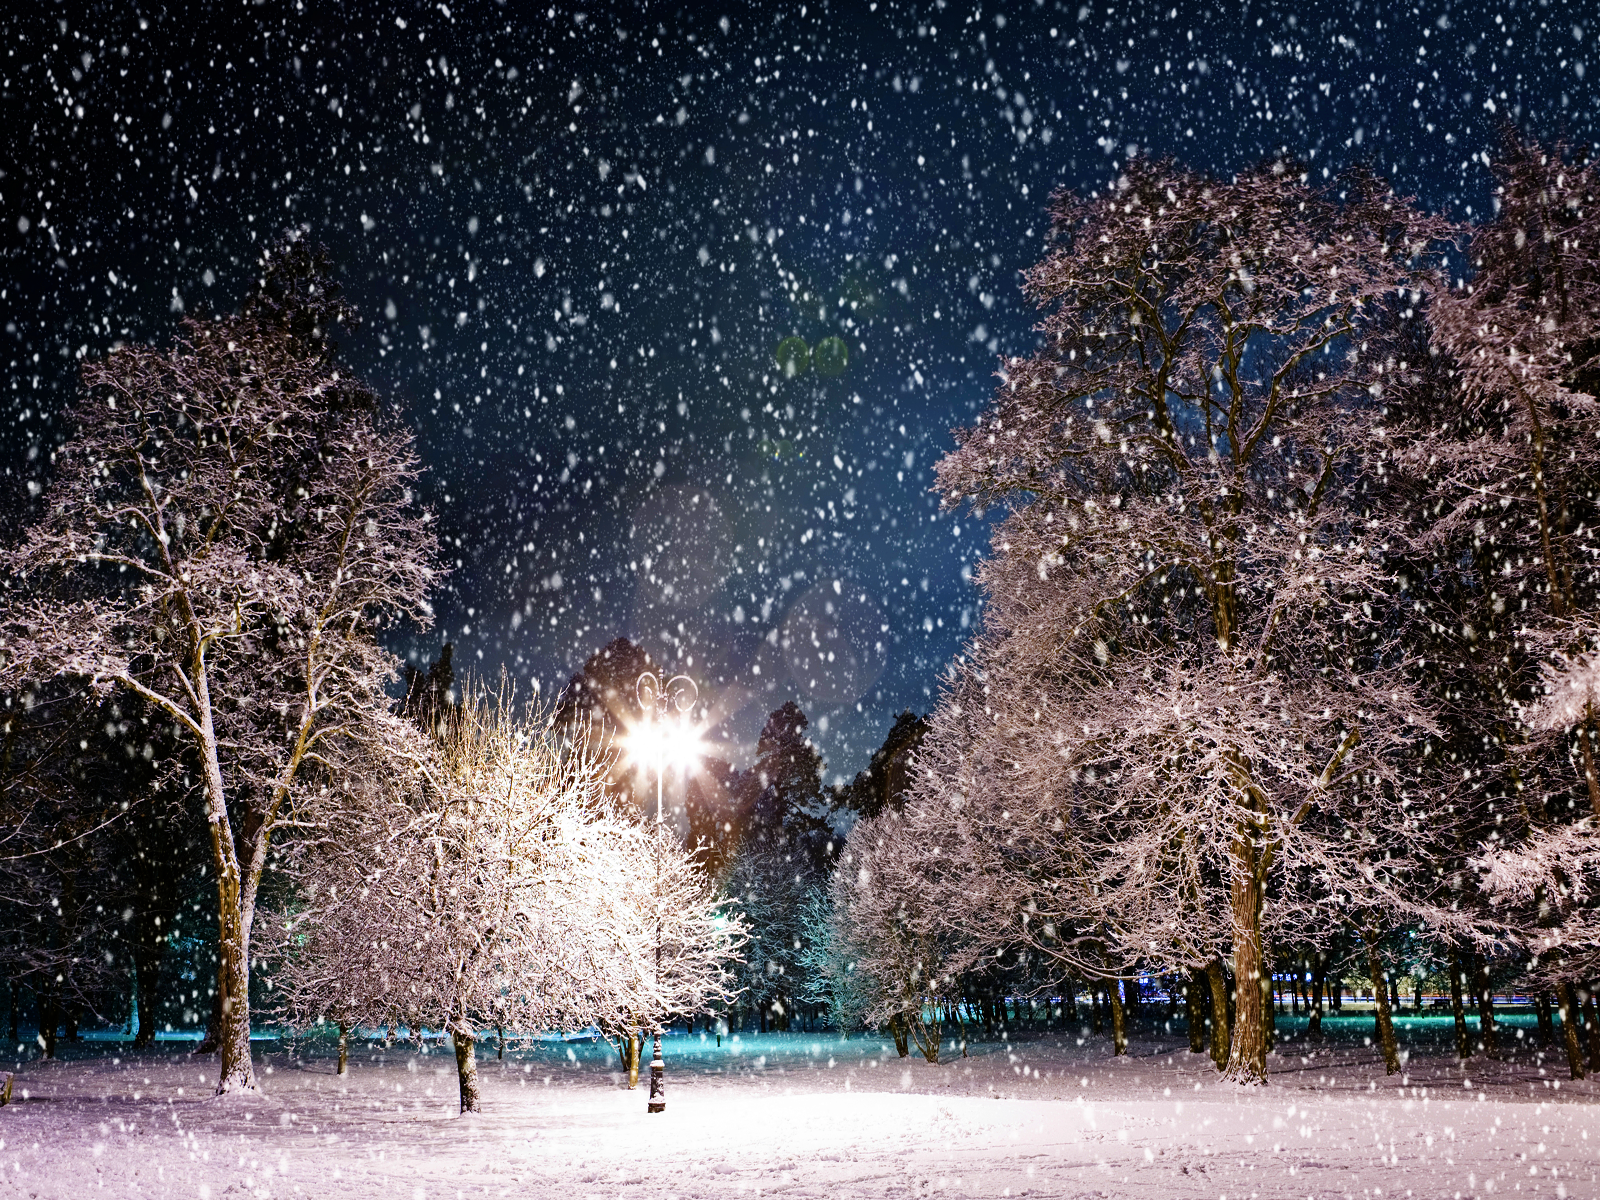 Snowy Night Background   HD Wallpapers Blog 1600x1200